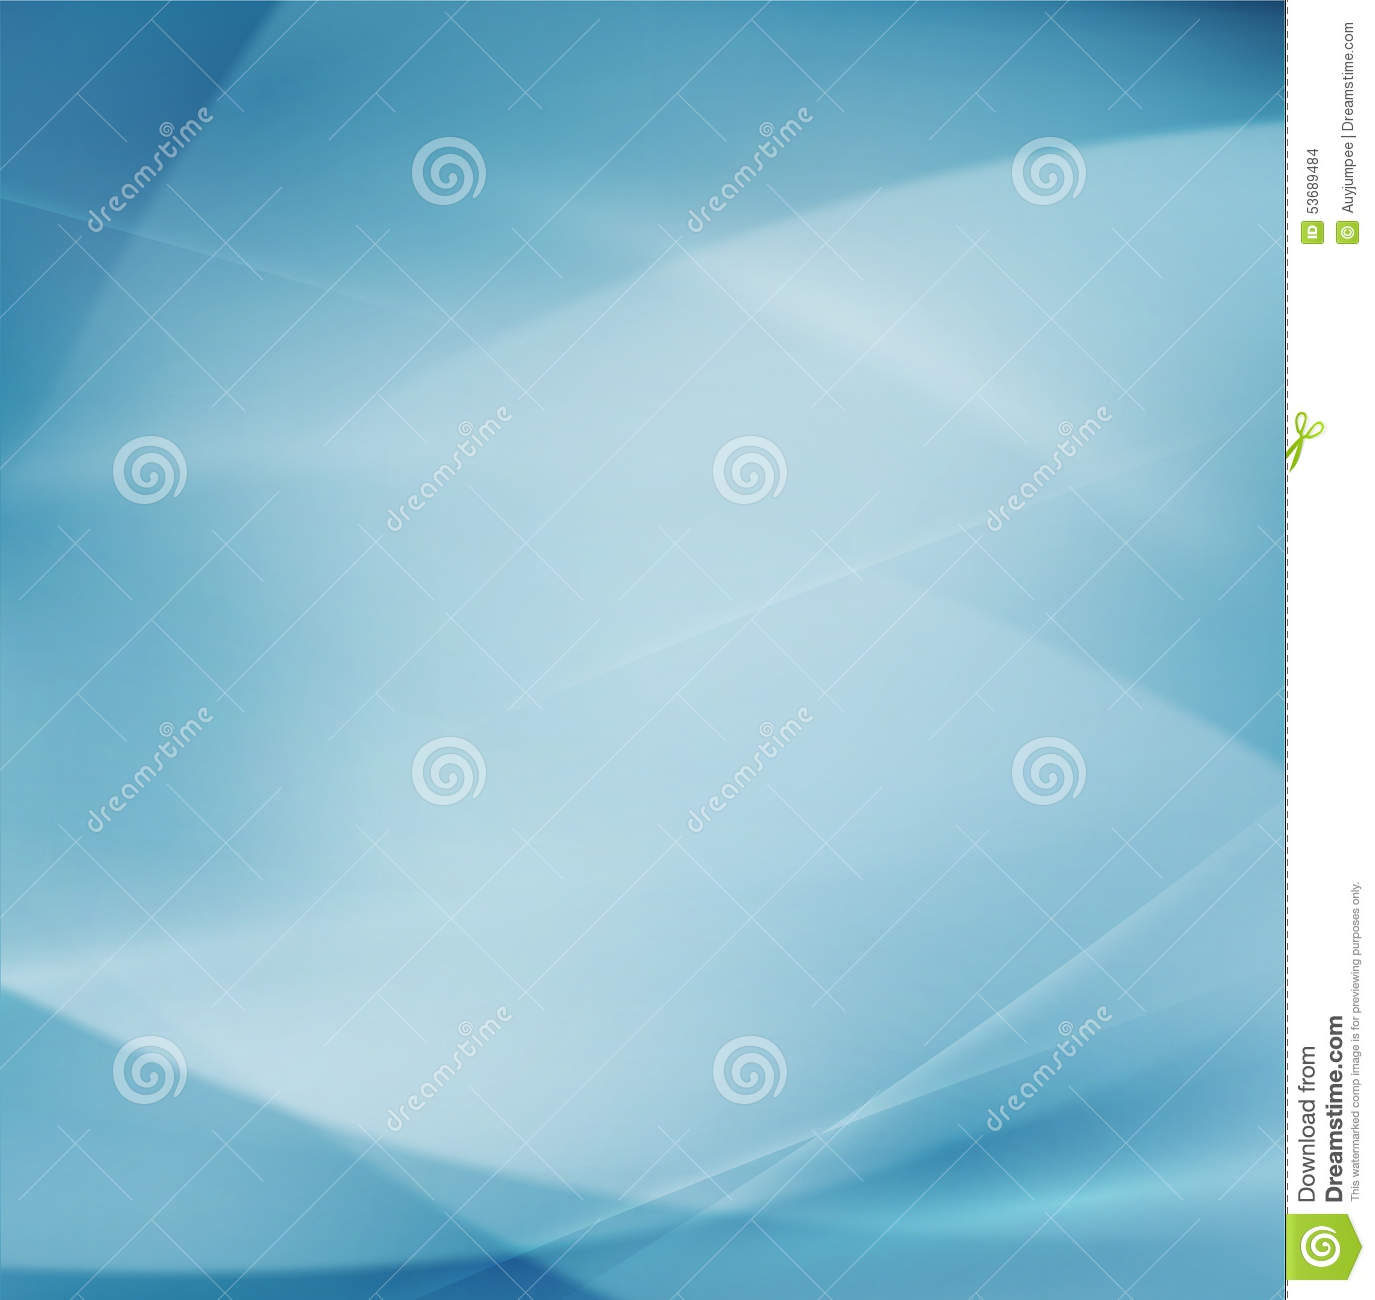 Abstract flow smooth curve and clean background for science or technology concept, Vector & illustration